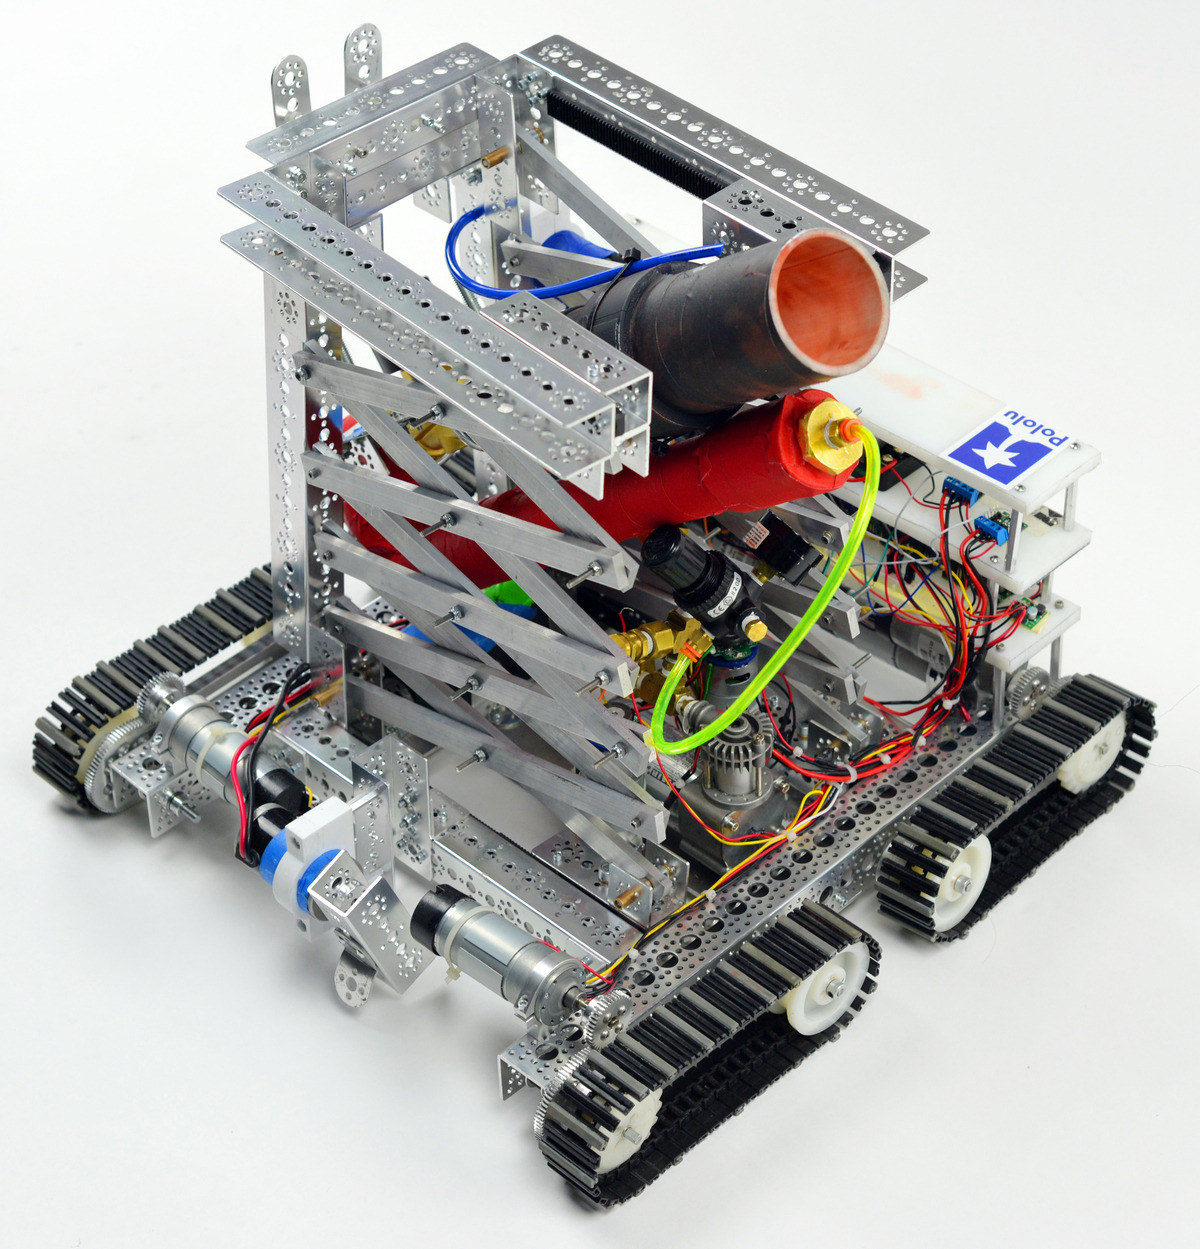 small resolution of it has been over a year since my last first blog post about my mini sumo robot since then i have been busy studying to earn a mechanical engineering